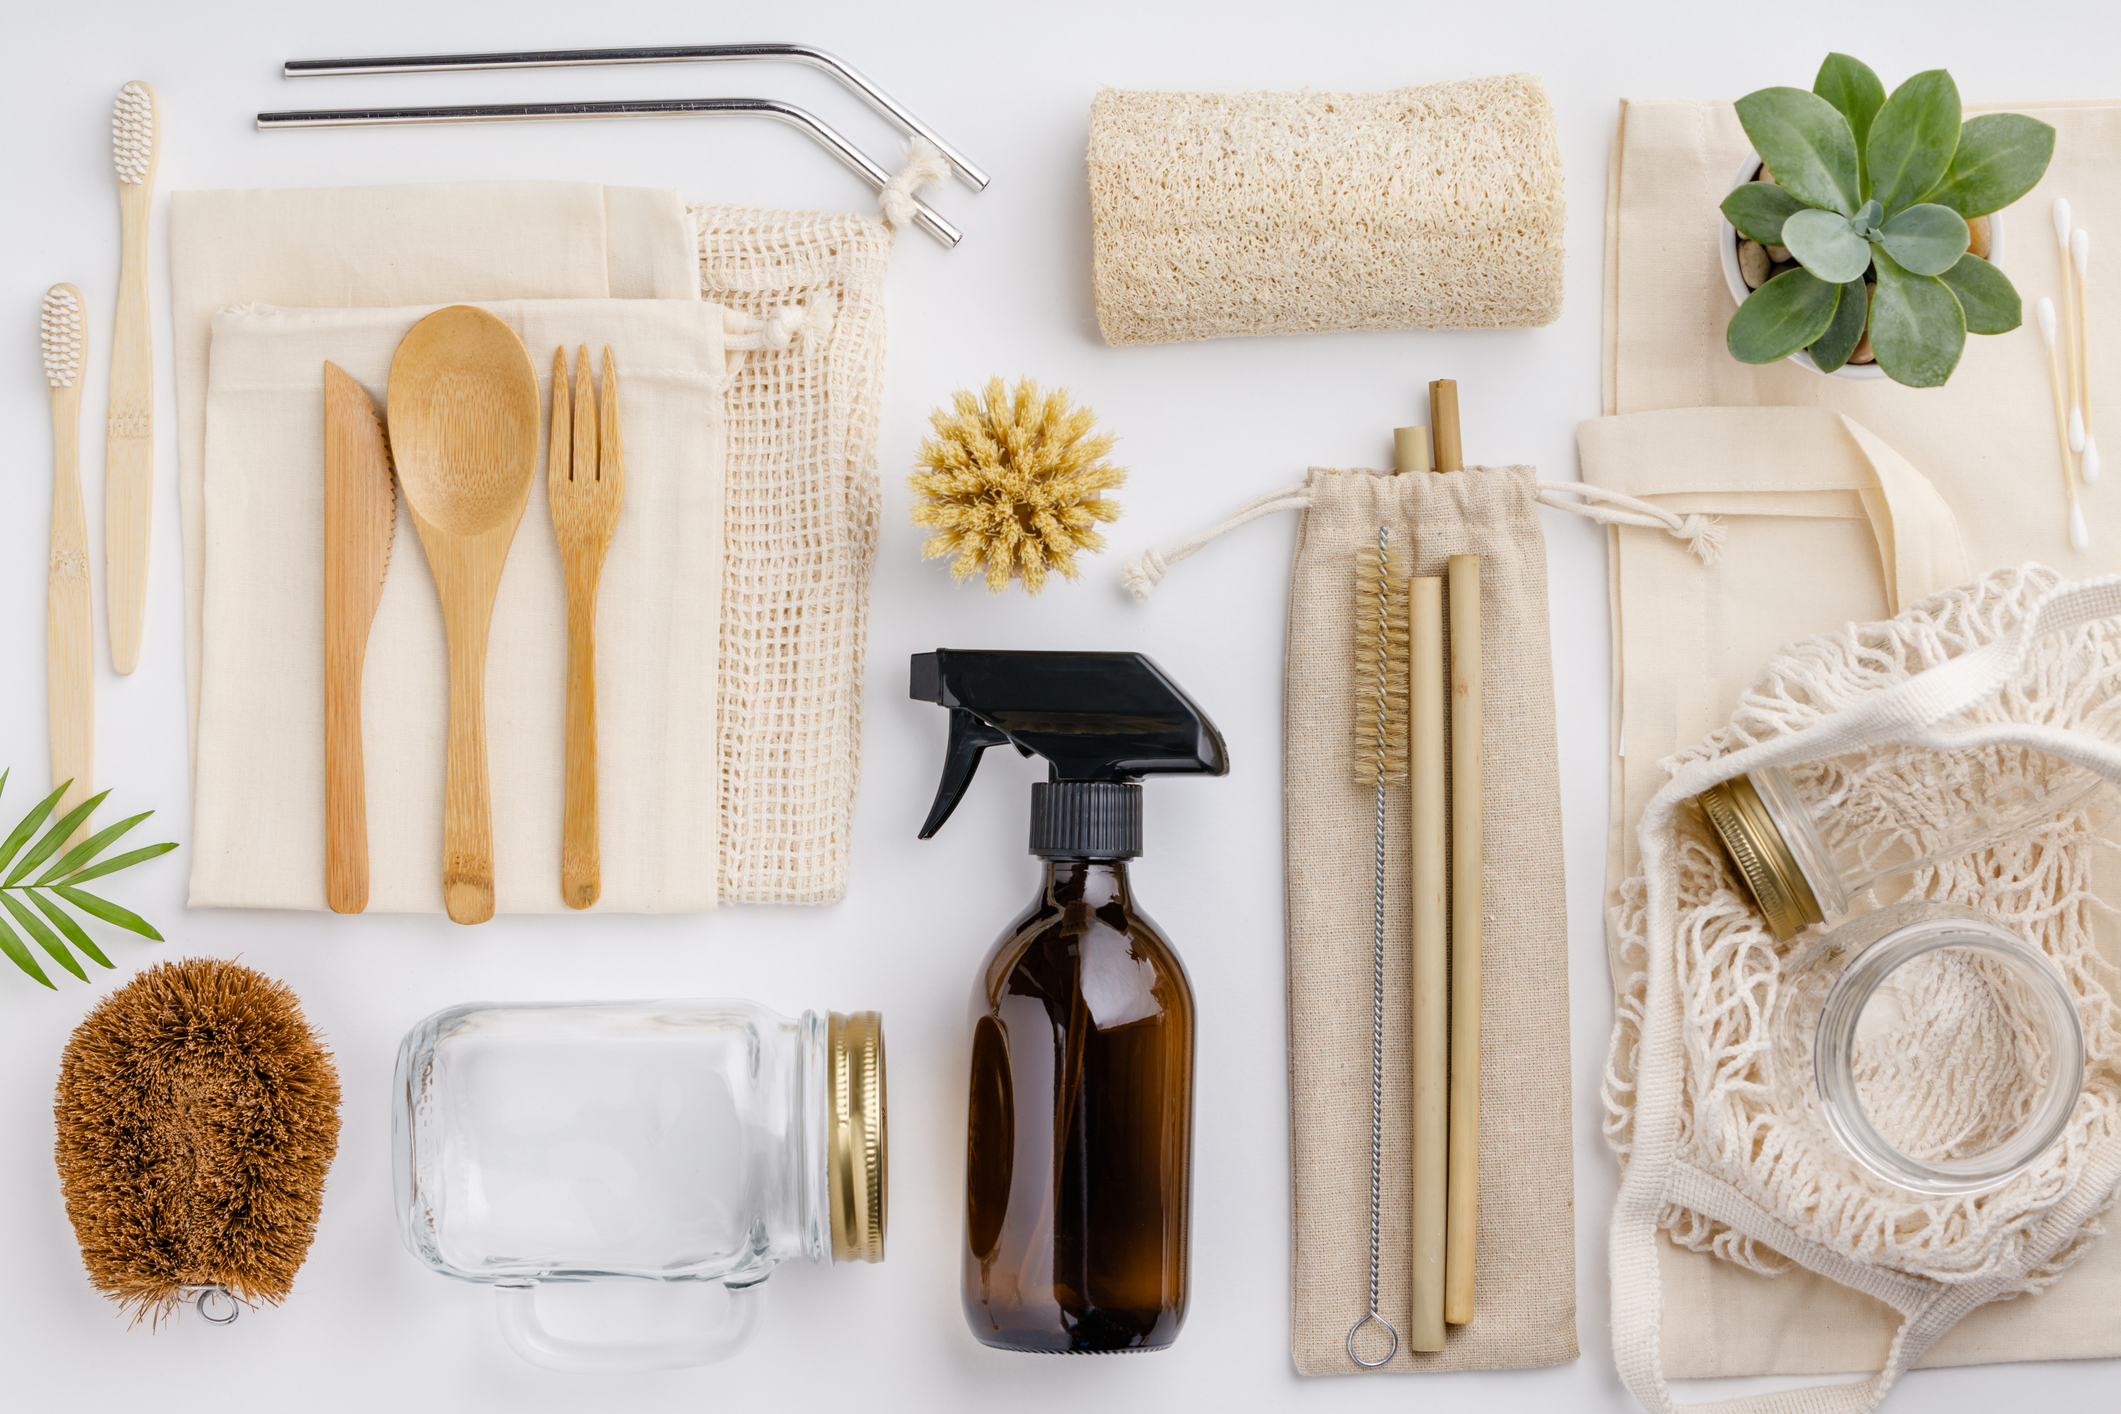 Green / eco-friendly cleaning products and utensils